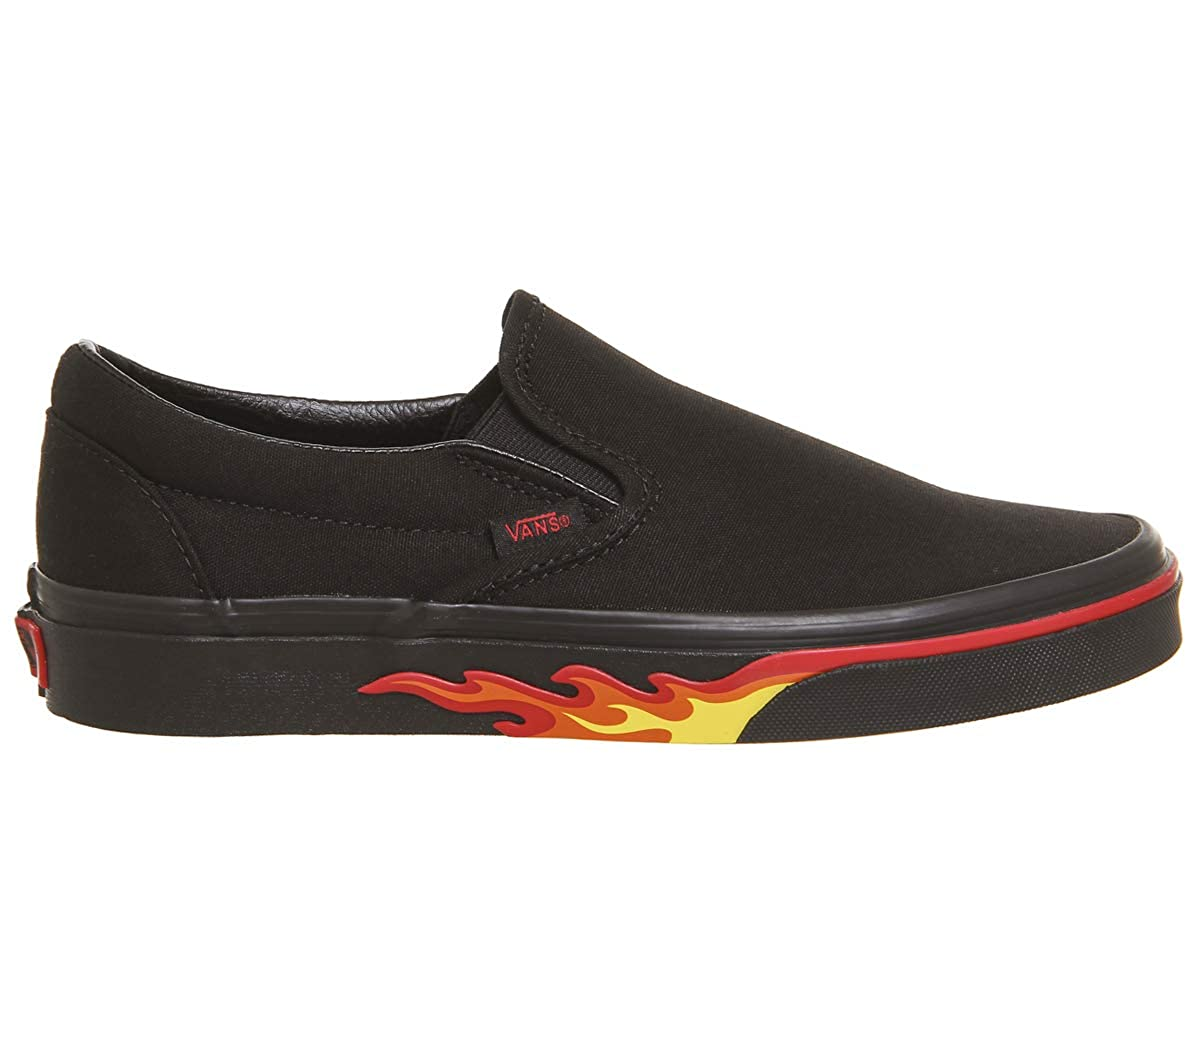 [バンズ] スニーカー Women's AUTHENTIC (Pig Suede) VN0A38EMU5O レディース B07G3KLKKG Flame Wall Black Black 9 M US 9 M US|Flame Wall Black Black